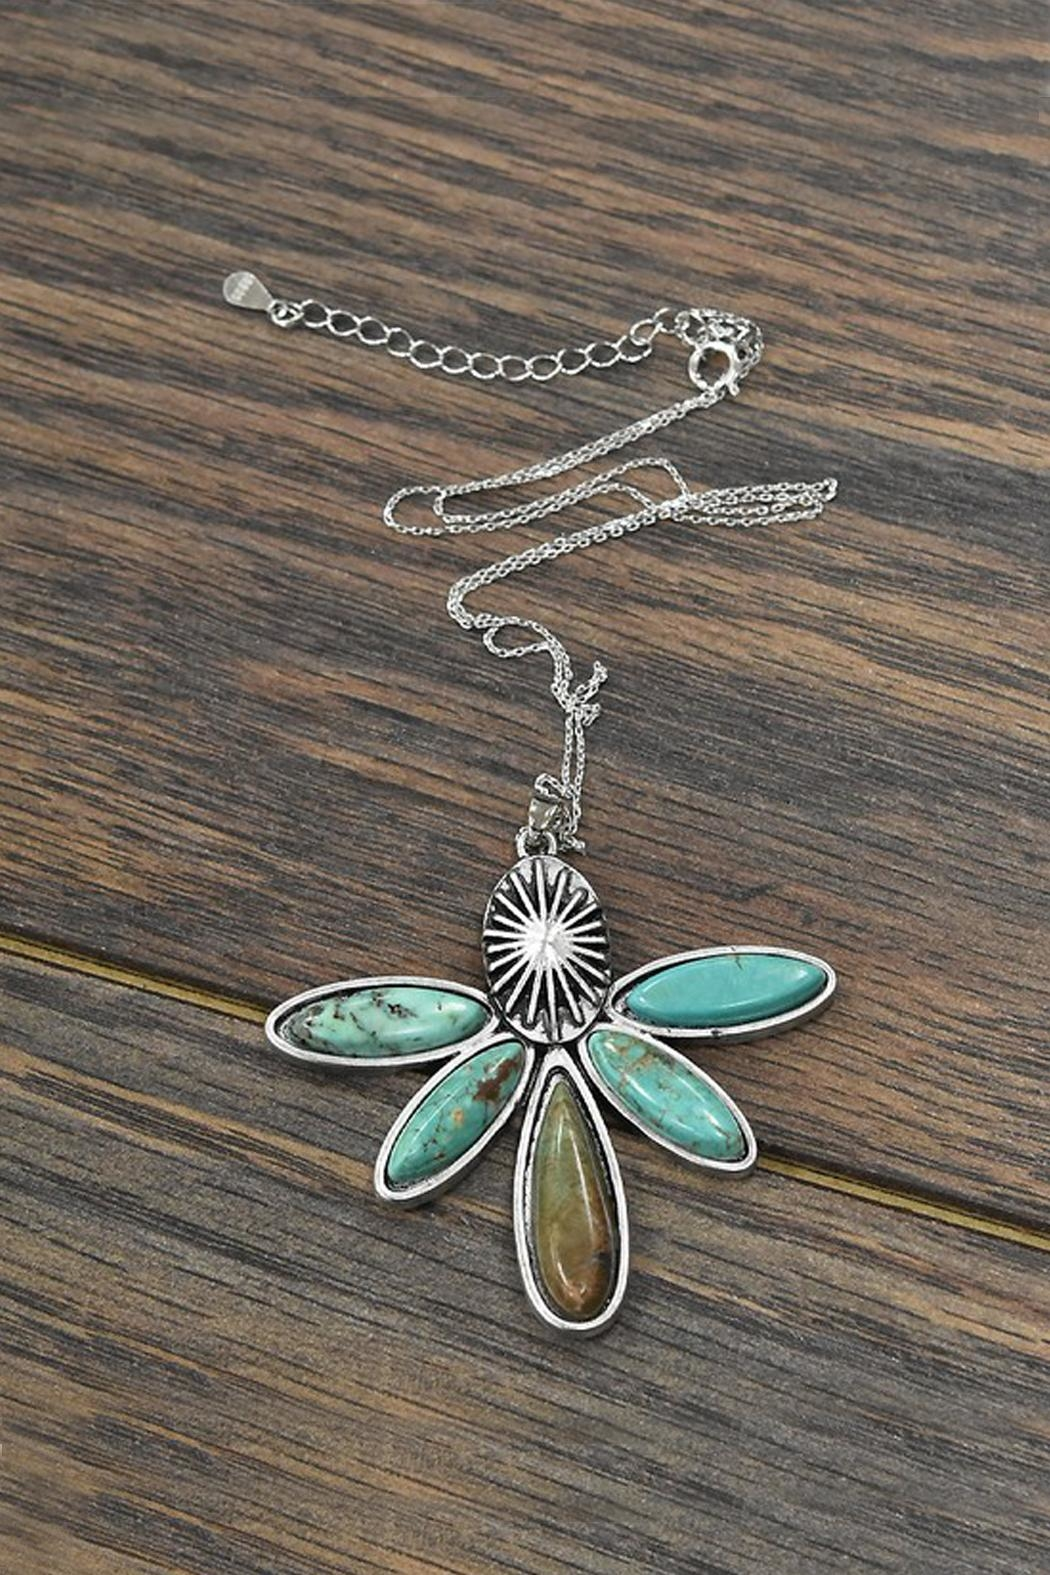 JChronicles Sterling-Silver-Chain Natural-Turquoise Pendant-Necklace - Main Image